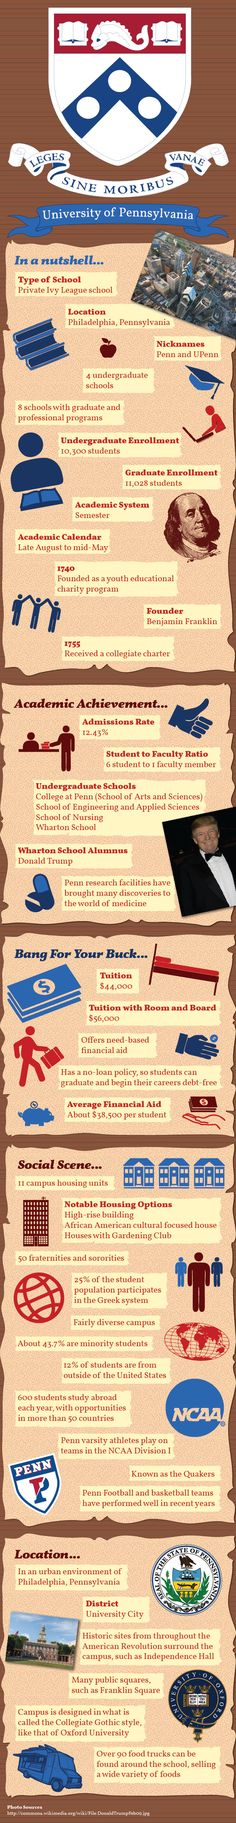 University of Pennsylvania Upenn Infographic - some of these statistics have changed in 2015 (tuition has gone up and the acceptance rate has gone down). College Goals, College Planning, College Hacks, College Life, College Usa, Usa University, University Of Pennsylvania, Graduate School, Law School